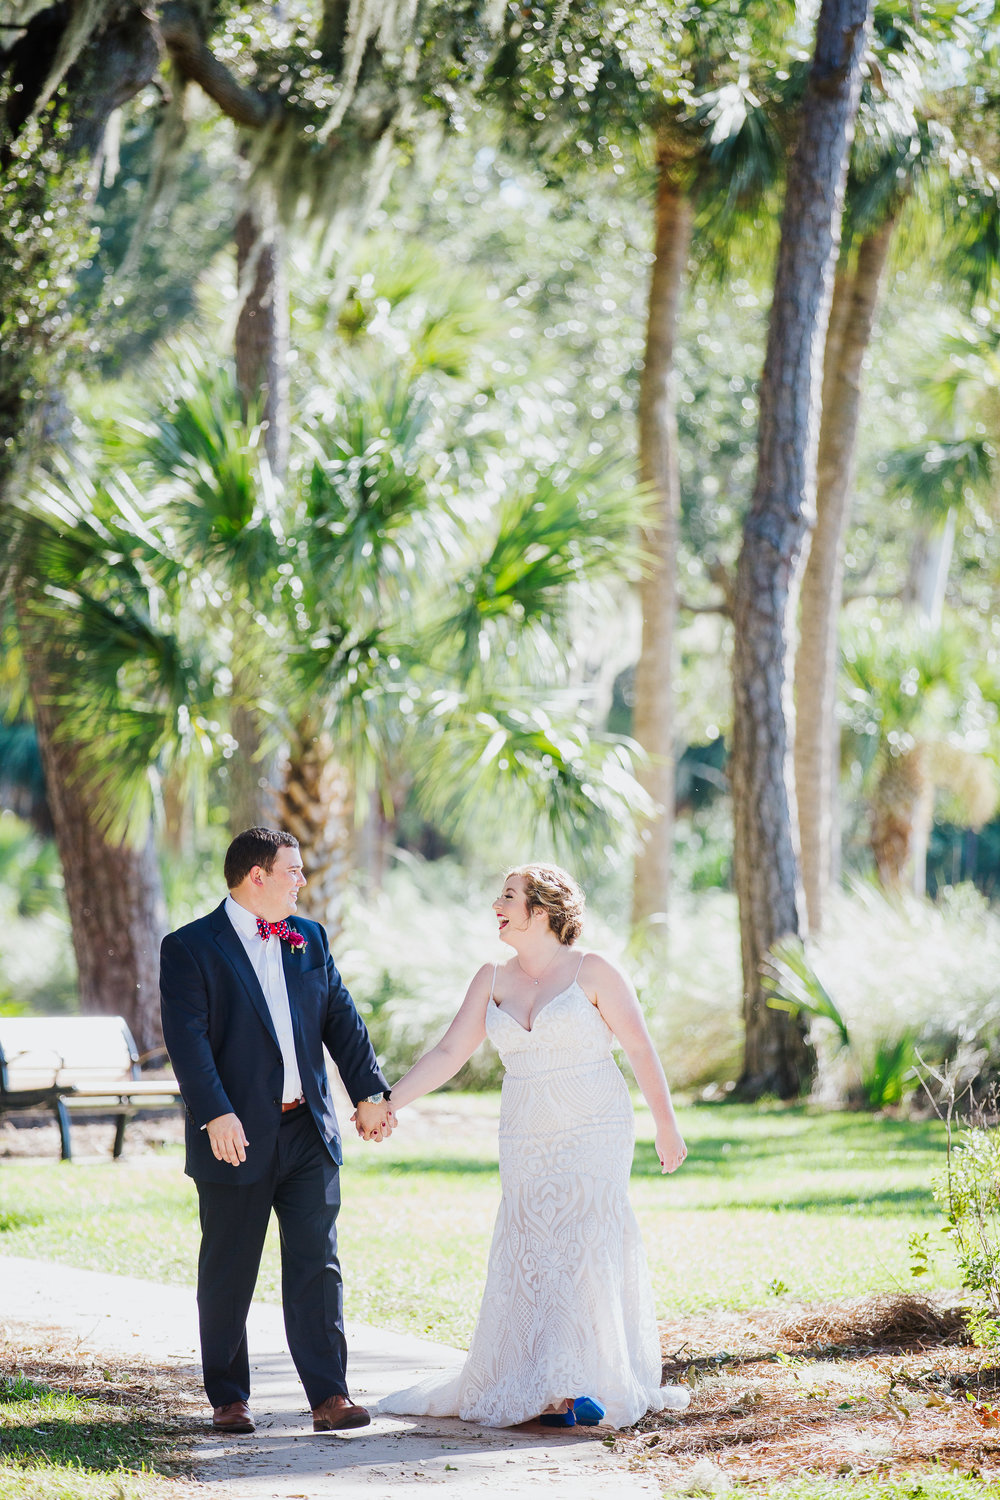 ivory_and_beau_savannah_bridal_shop_ivory_and_beau_bride_mary_kate_west_by_blush_by_hayley_paige_izzy_hudgins_photography_Savannah_wedding_dress_16.jpg